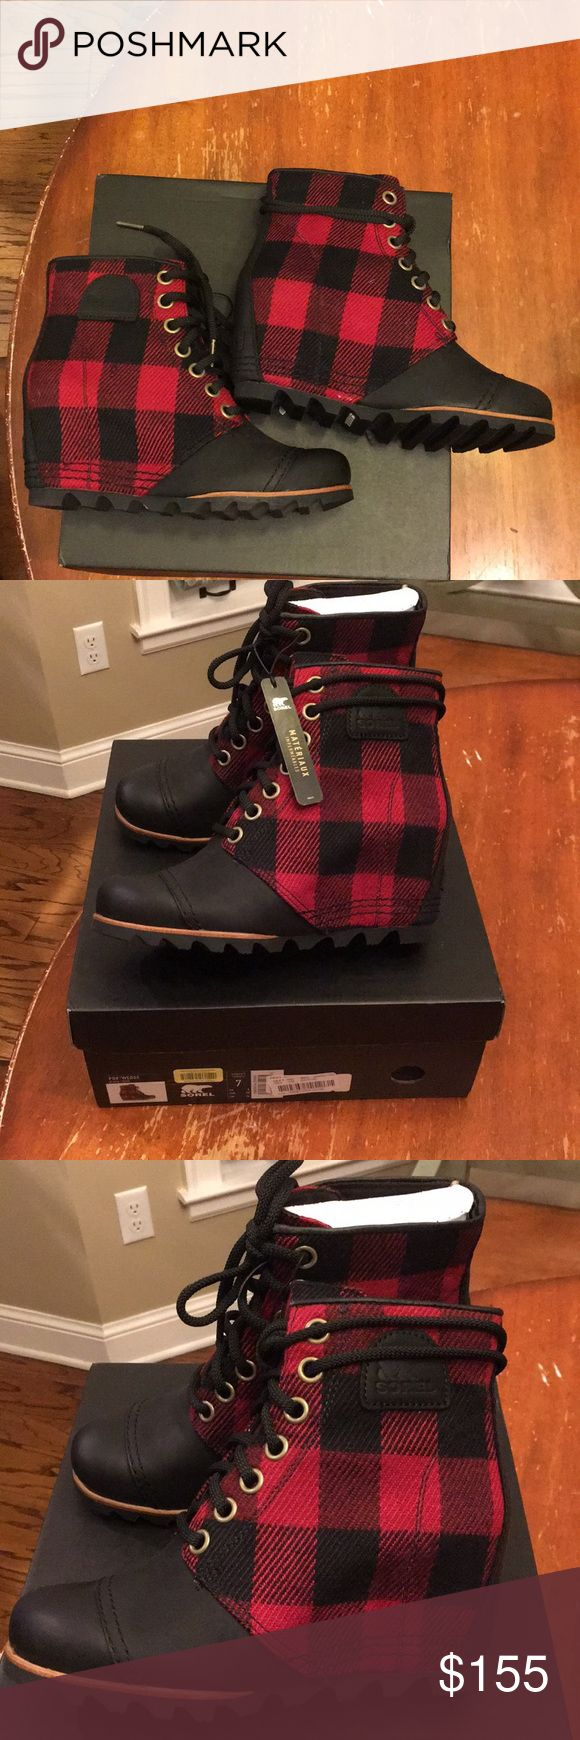 Sorel PDX Wedge NIB Size 6.5 Black/Red Sorel PDX Wedge NEW IN BOX SIZE 6.5 Black/Red. Sorel Shoes Winter & Rain Boots